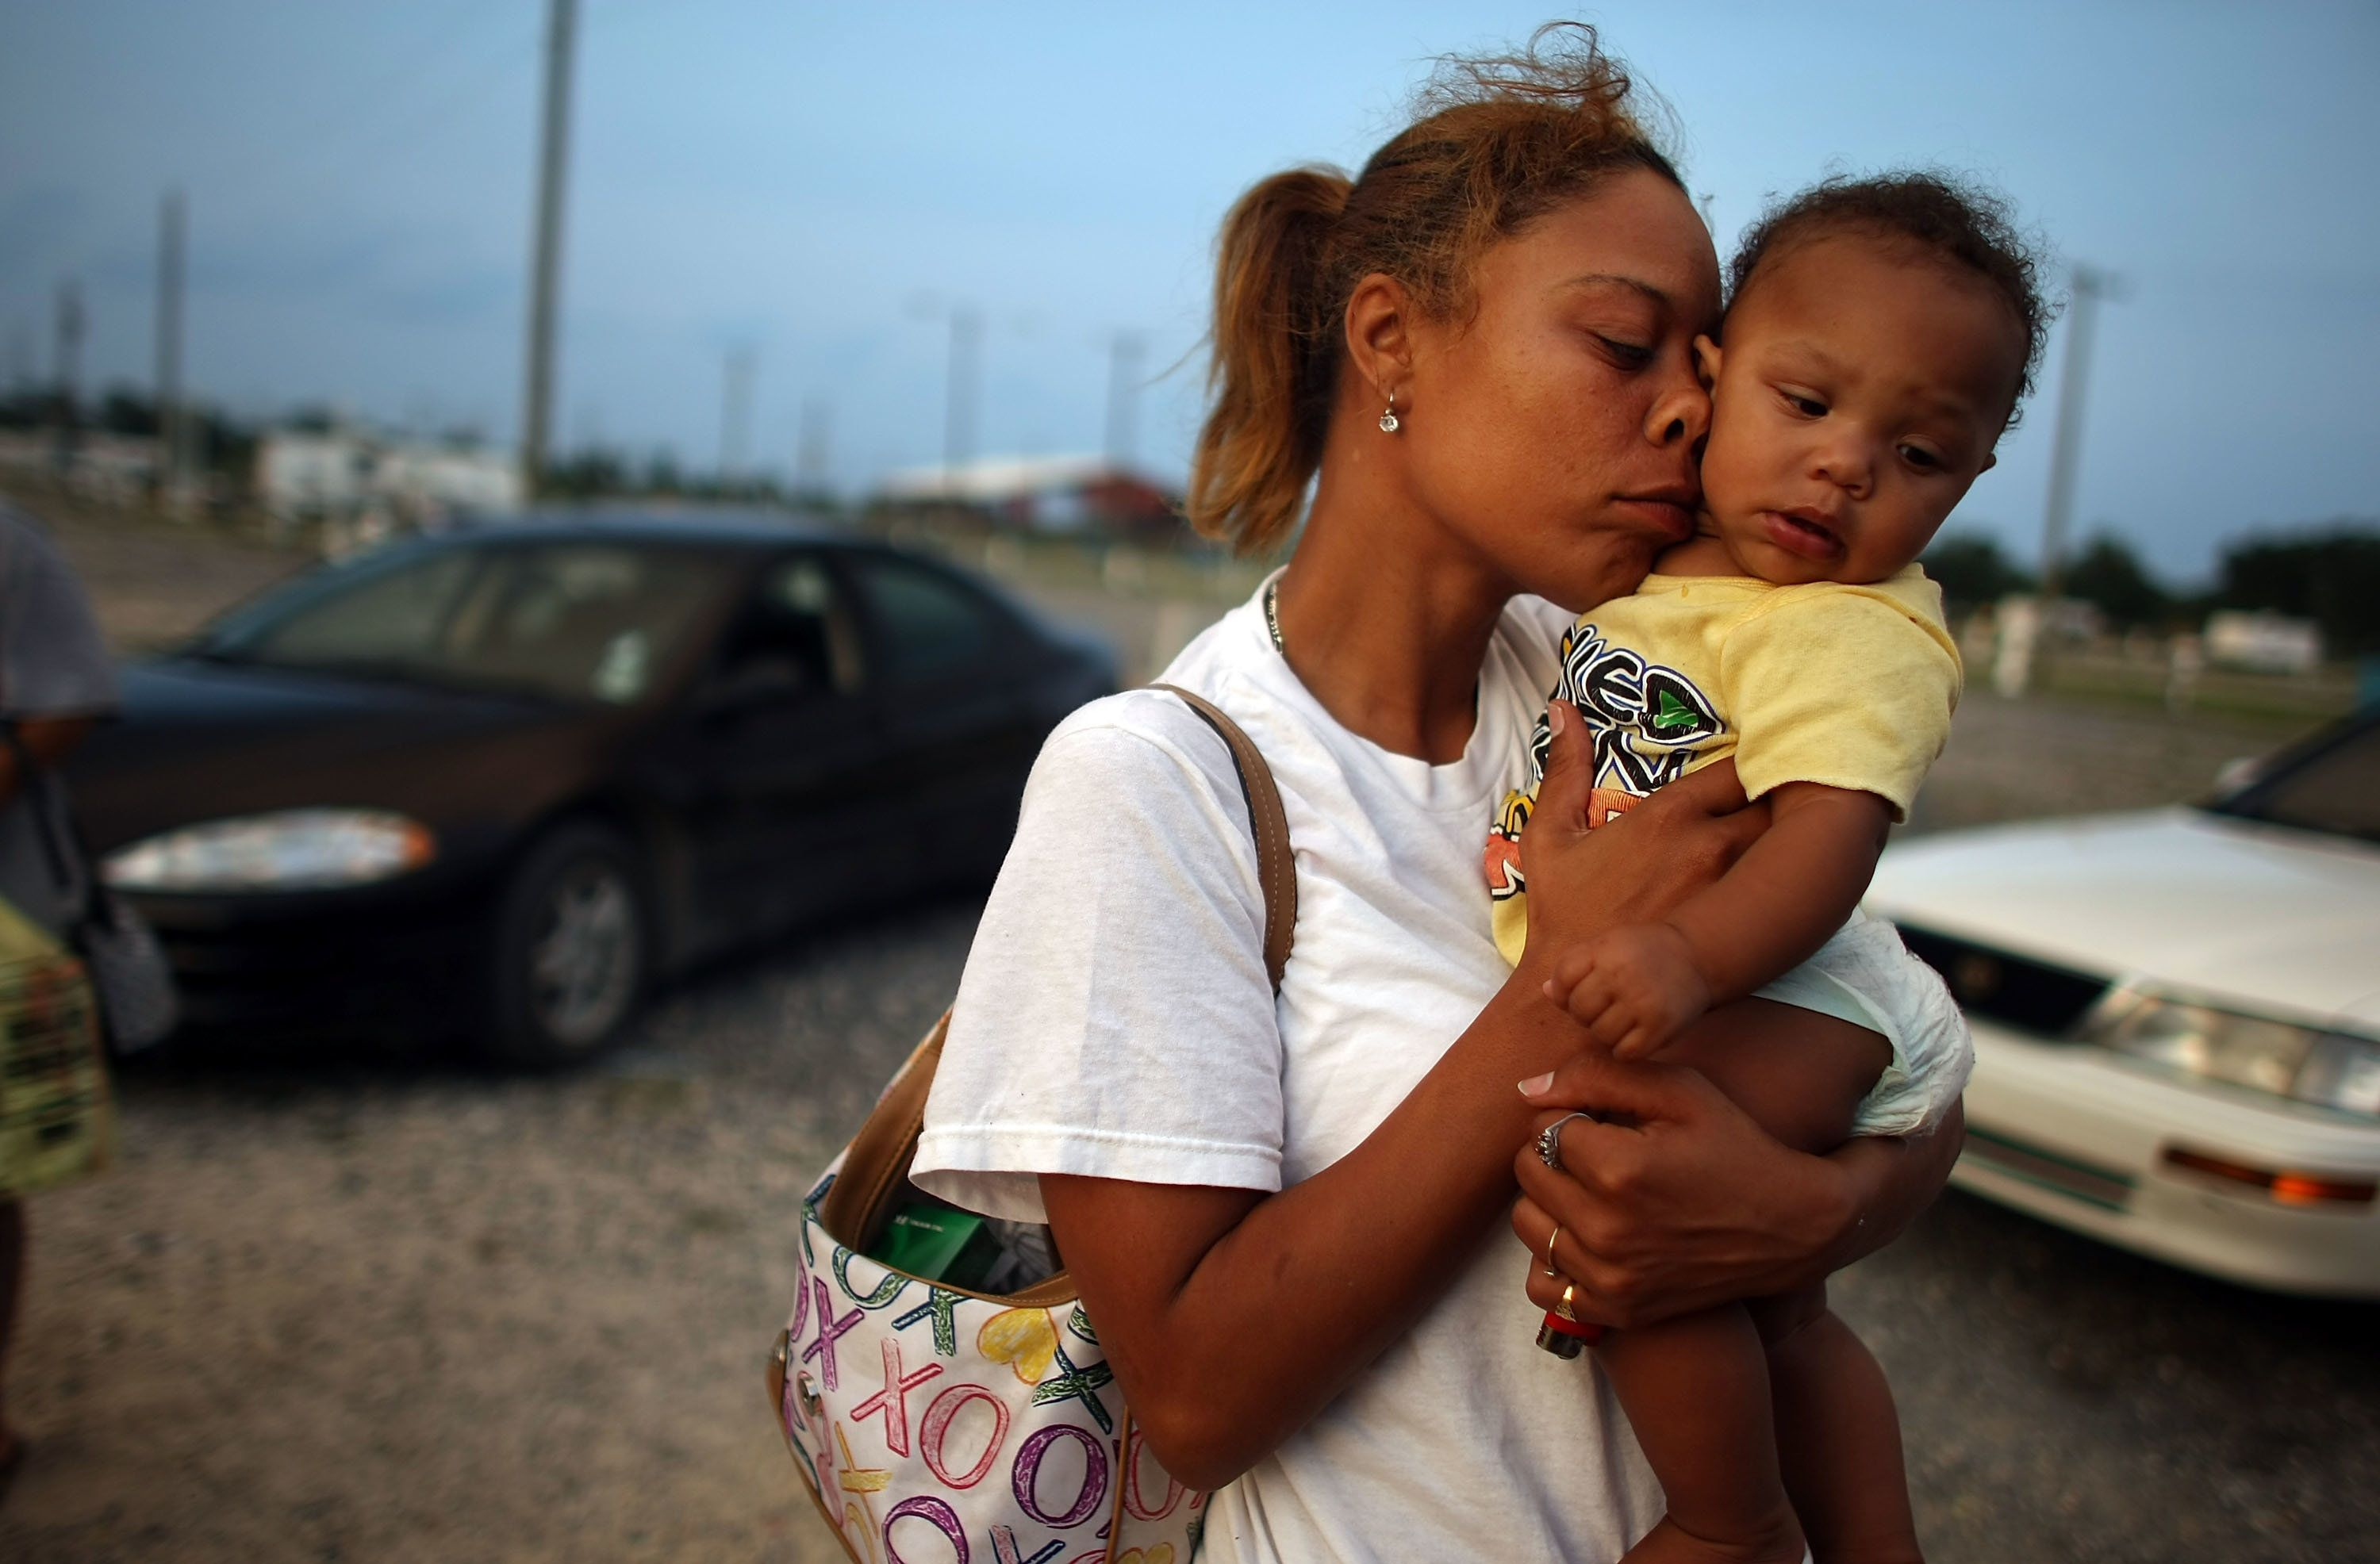 PORT SULPHUR, LA - MAY 26:  Shelly Phillips holds niece Kimmore Barthelemy in the FEMA Diamond travel trailer park May 26, 2008 in Port Sulphur, Louisiana. Phillips lost her home and job in Hurricane Katrina and is raising four children. FEMA federal trailer parks that house many Hurricane Katrina victims are set to close May 31, prompting fears that people will be forced into residences they can't afford or will be left homeless. Most residents will receive a federal subsidy to move to apartments, but affordable rental housing is scarce in some areas like New Orleans and Baton Rouge.  (Photo by Mario Tama/Getty Images)